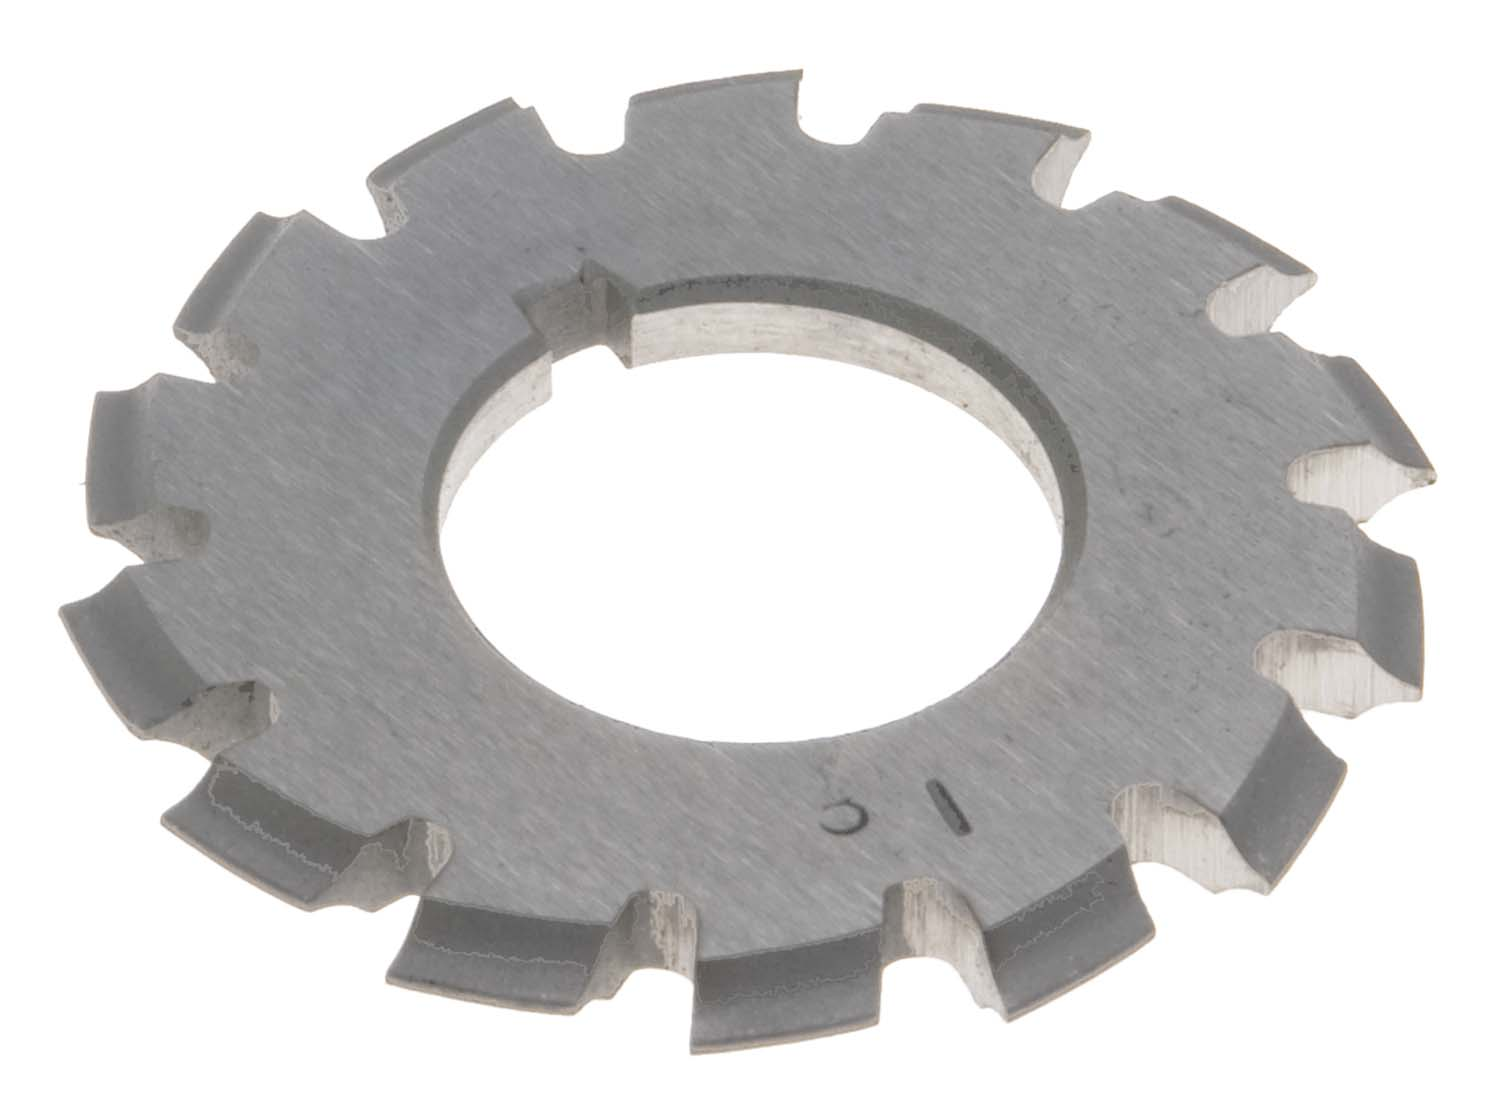 22 Diametral Pitch # 3  Involute Gear Cutter - 7/8 ID - 14-1/2 Degree Pressure Angle